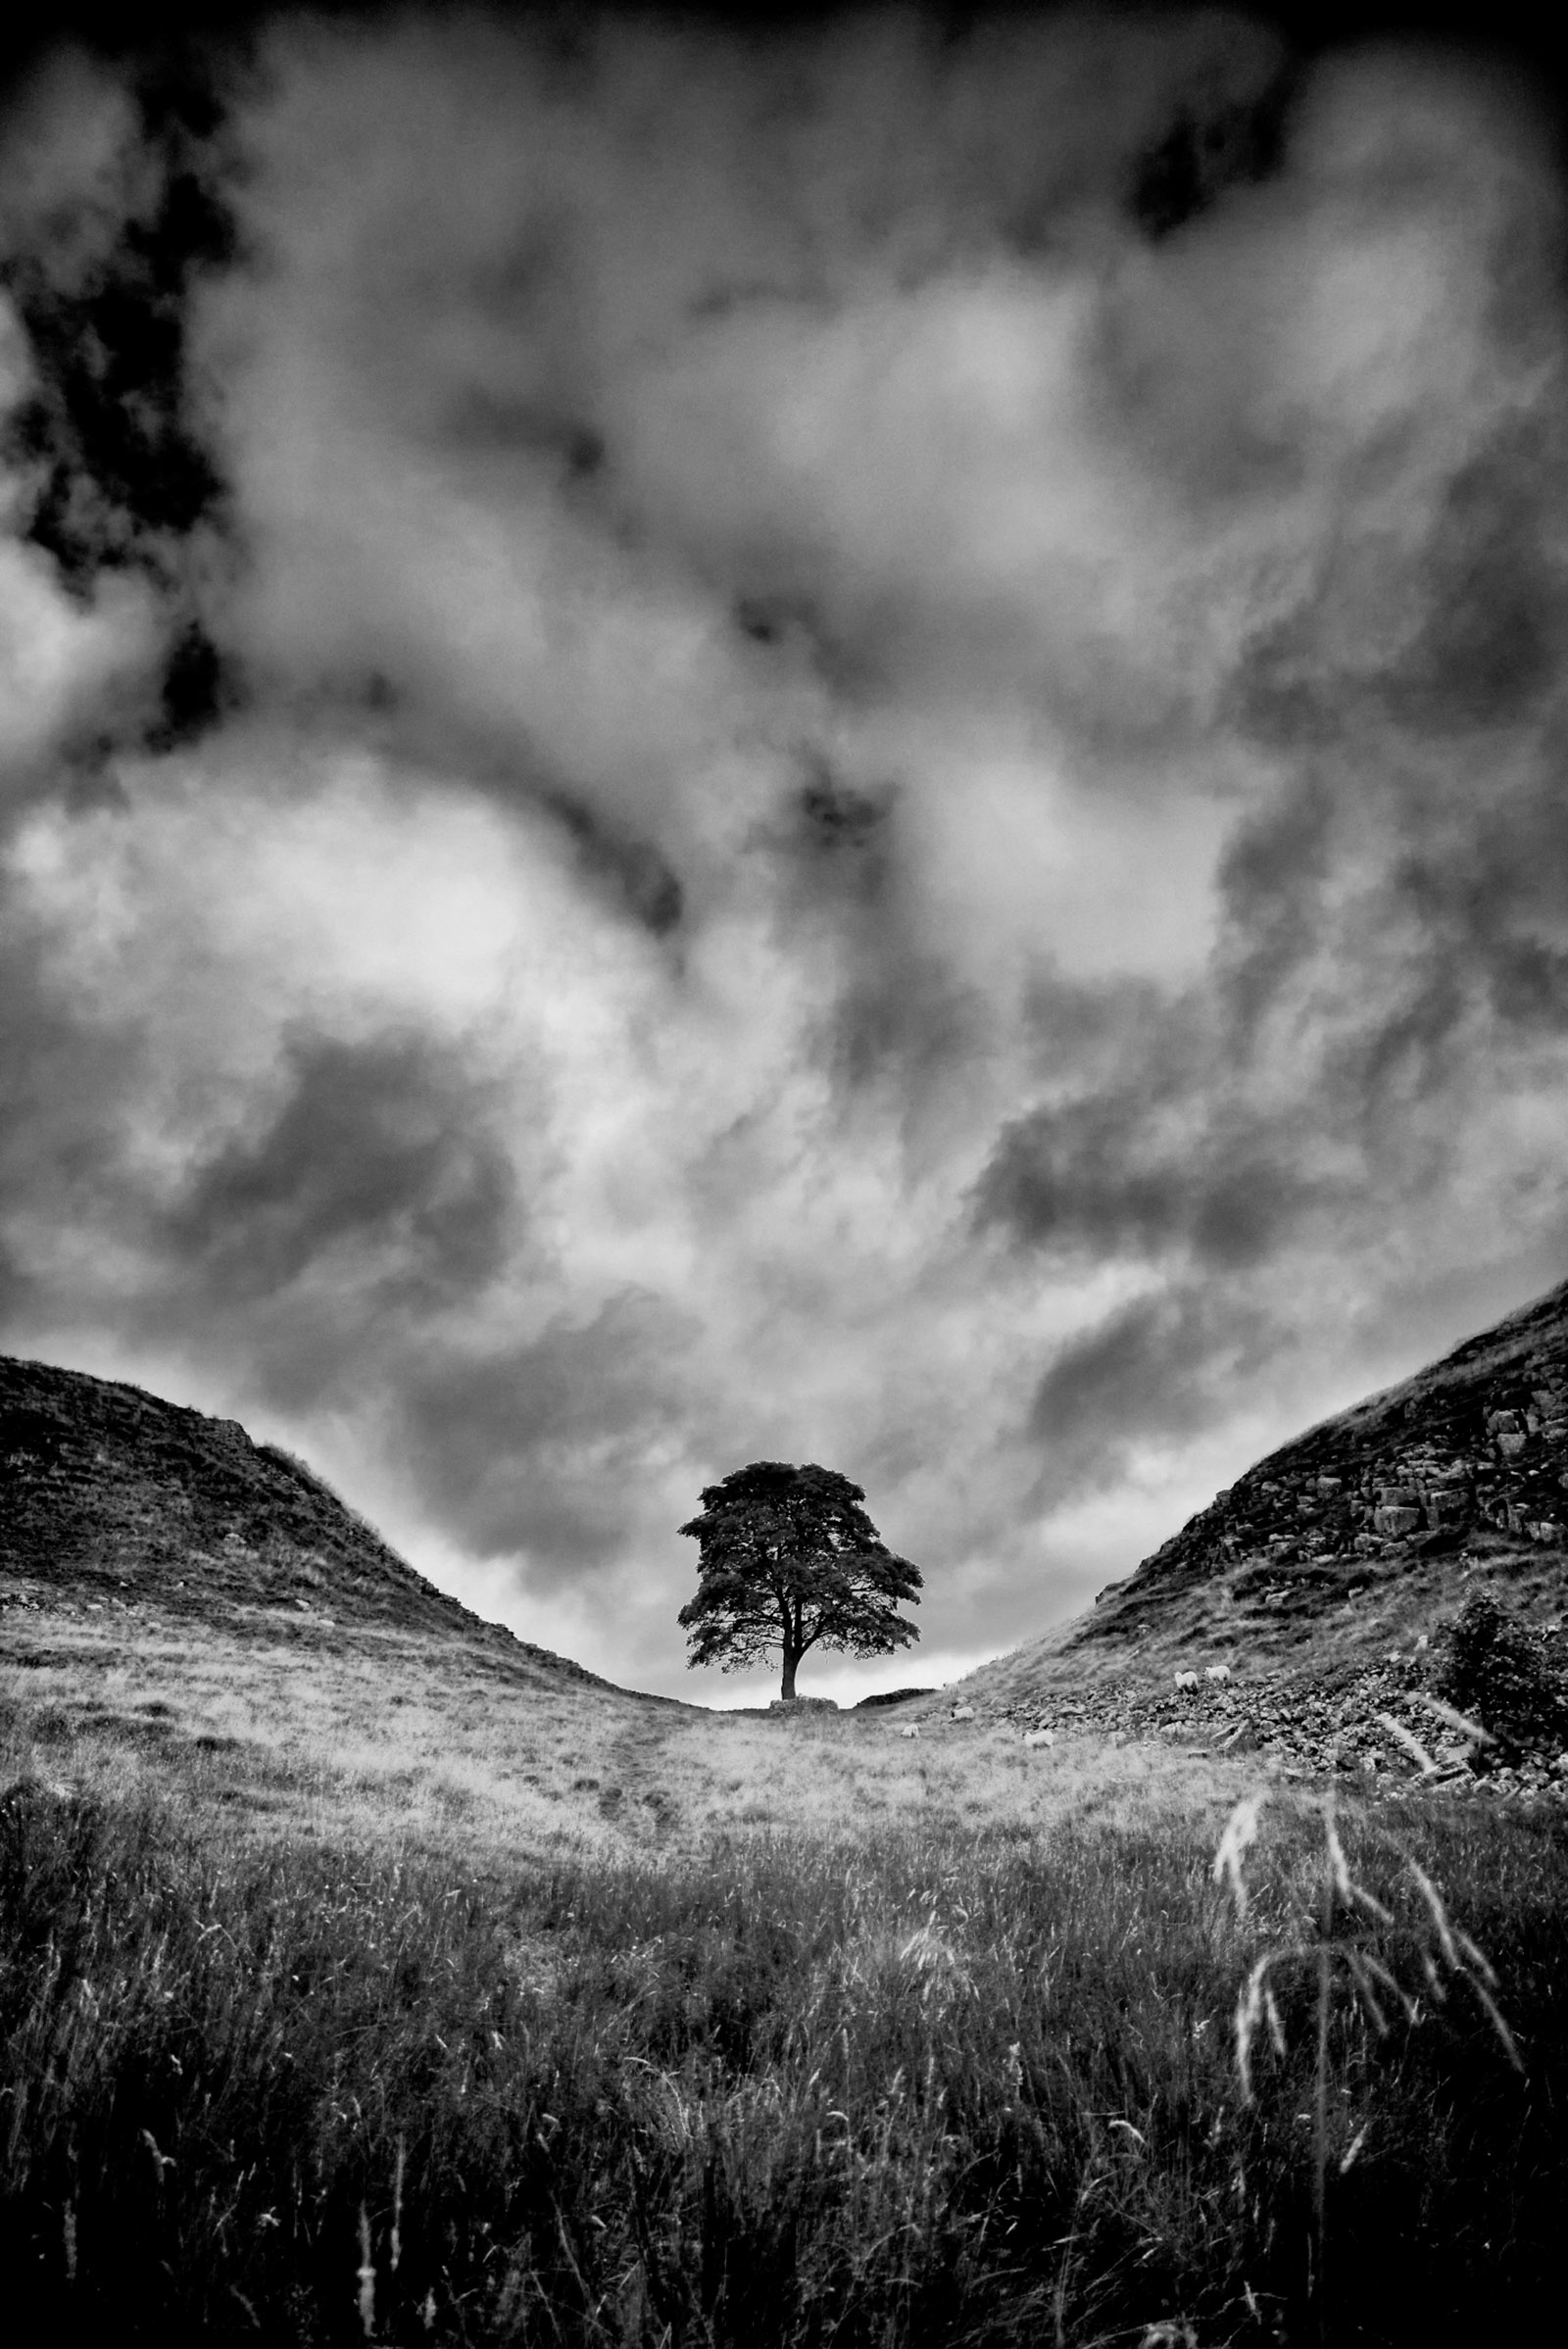 The sycamore tree (Acer pseudoplatanus) at Sycamore Gap, Hadrian's Wall, Northumberland, England; photograph by Rory Garforth